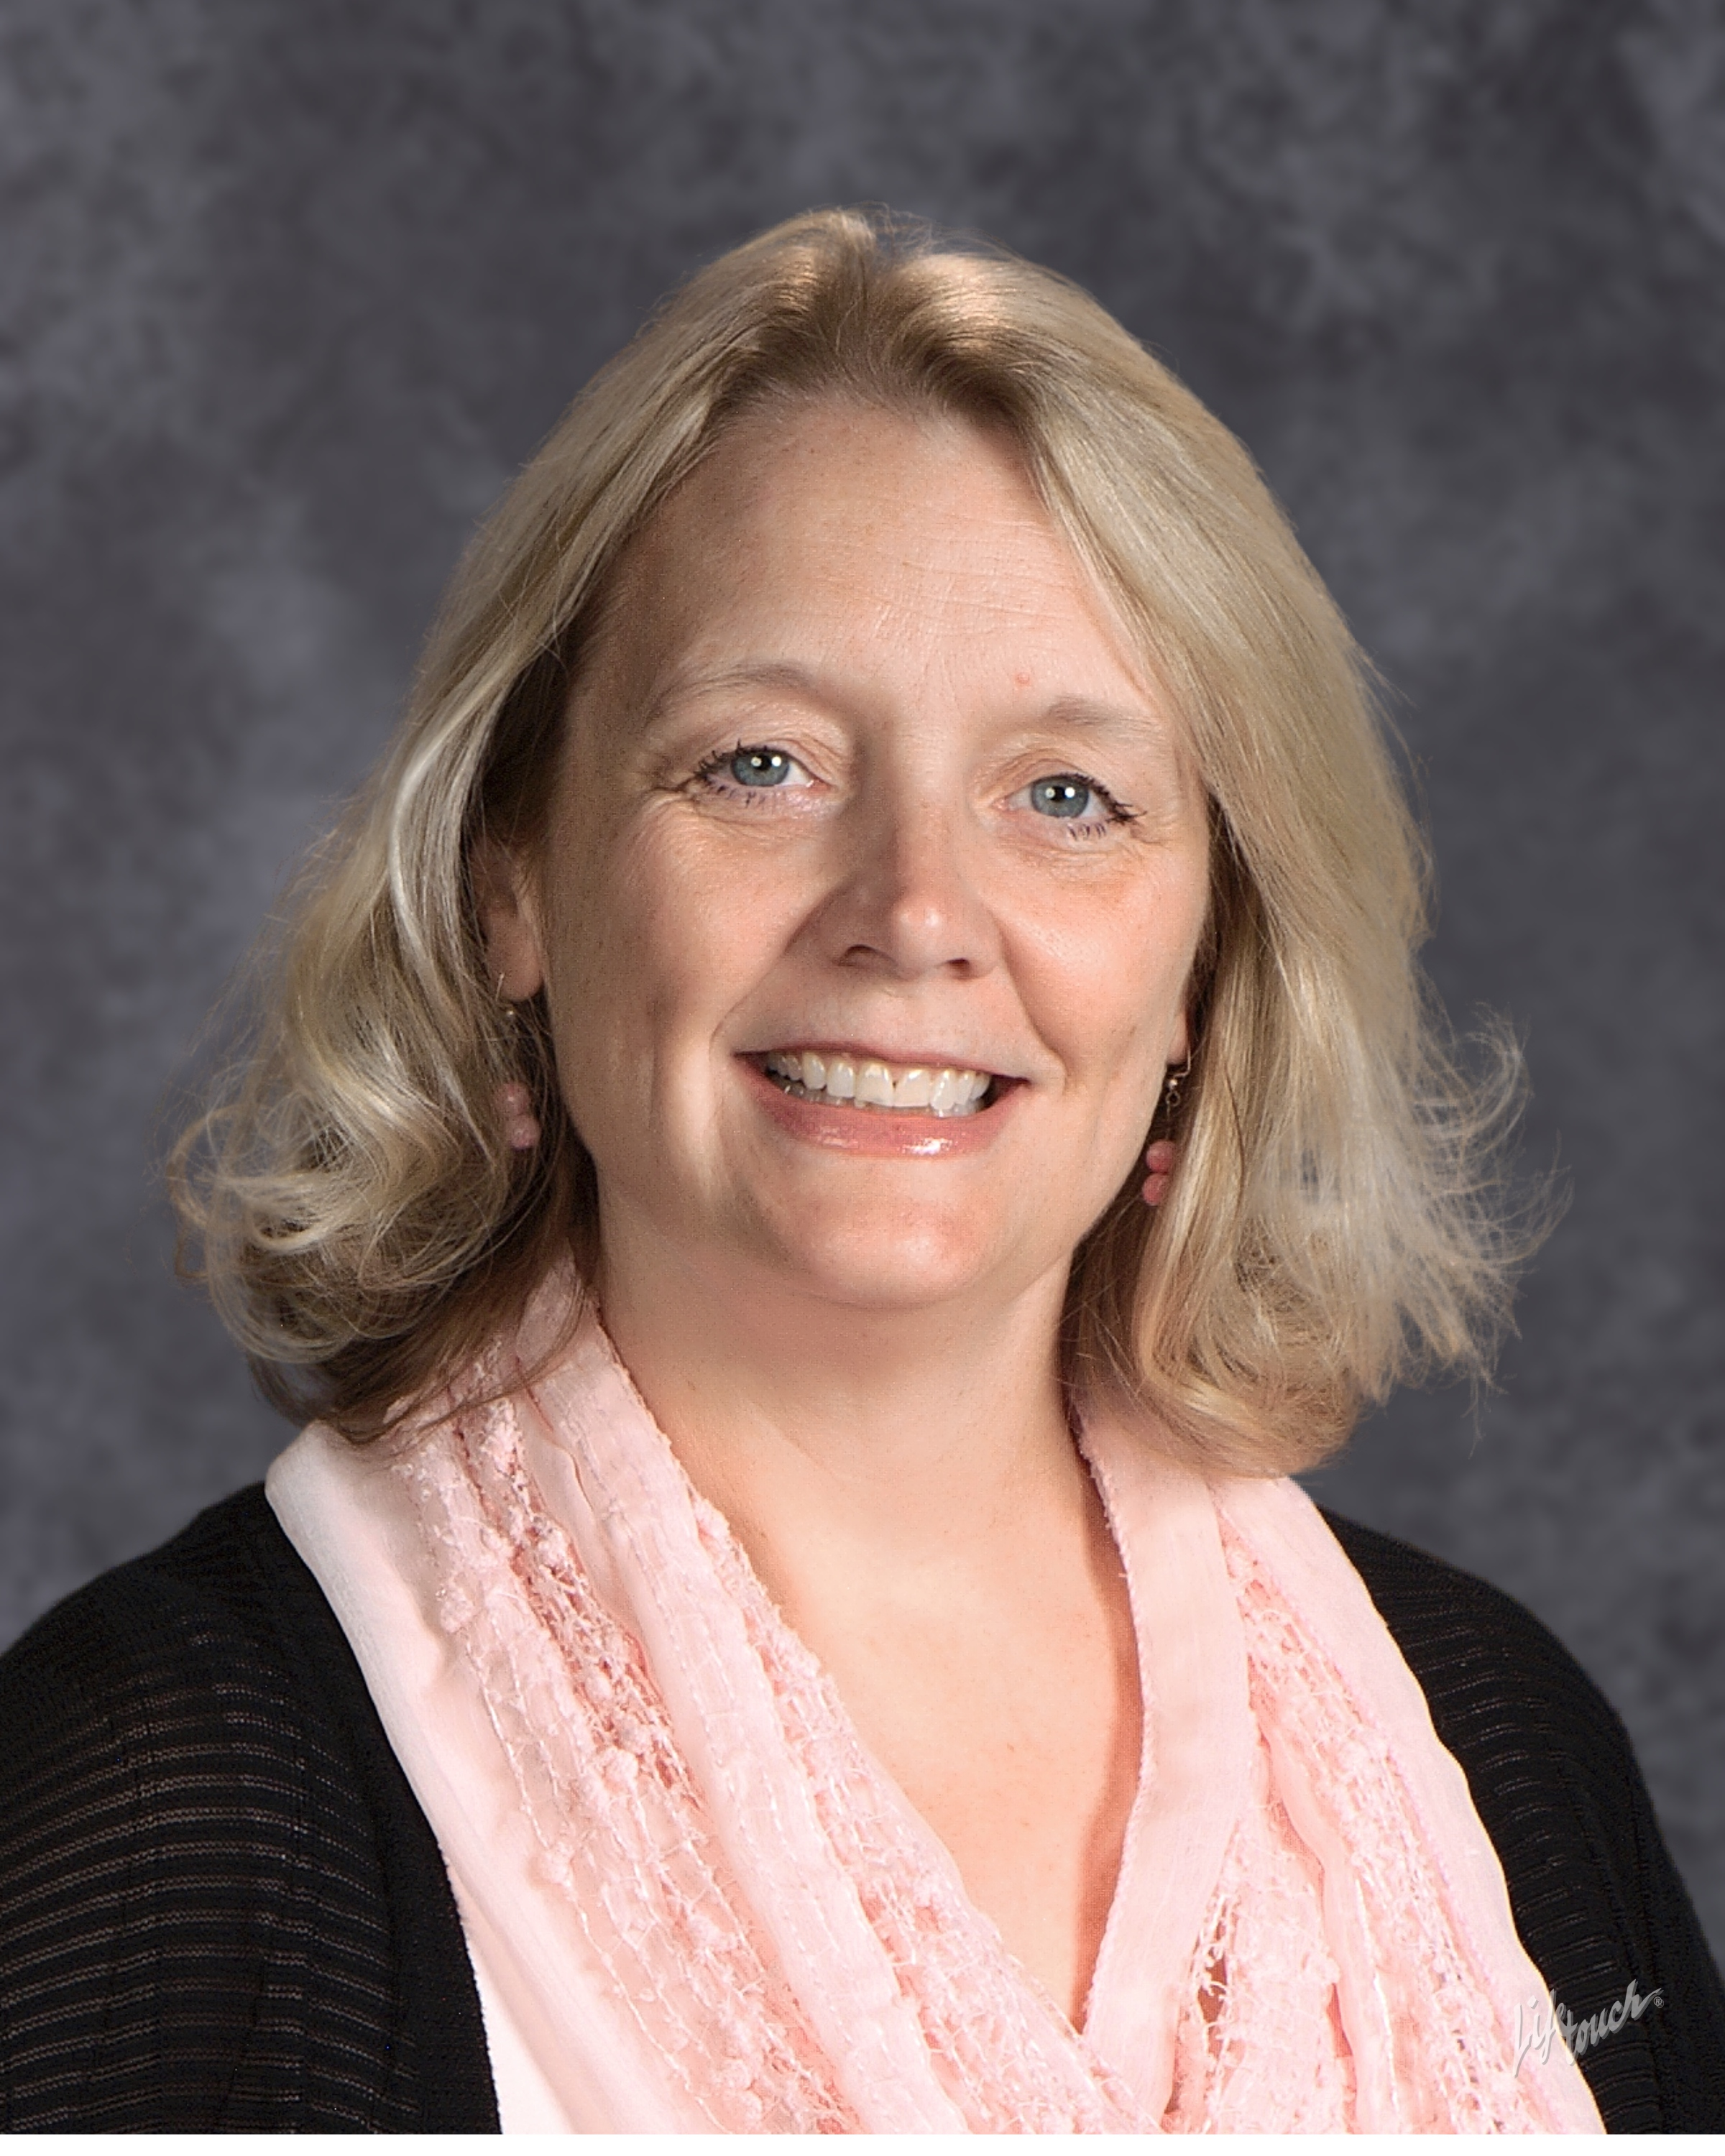 Julie Kirchner Advances to Semi-Finalist for Teacher of the Year